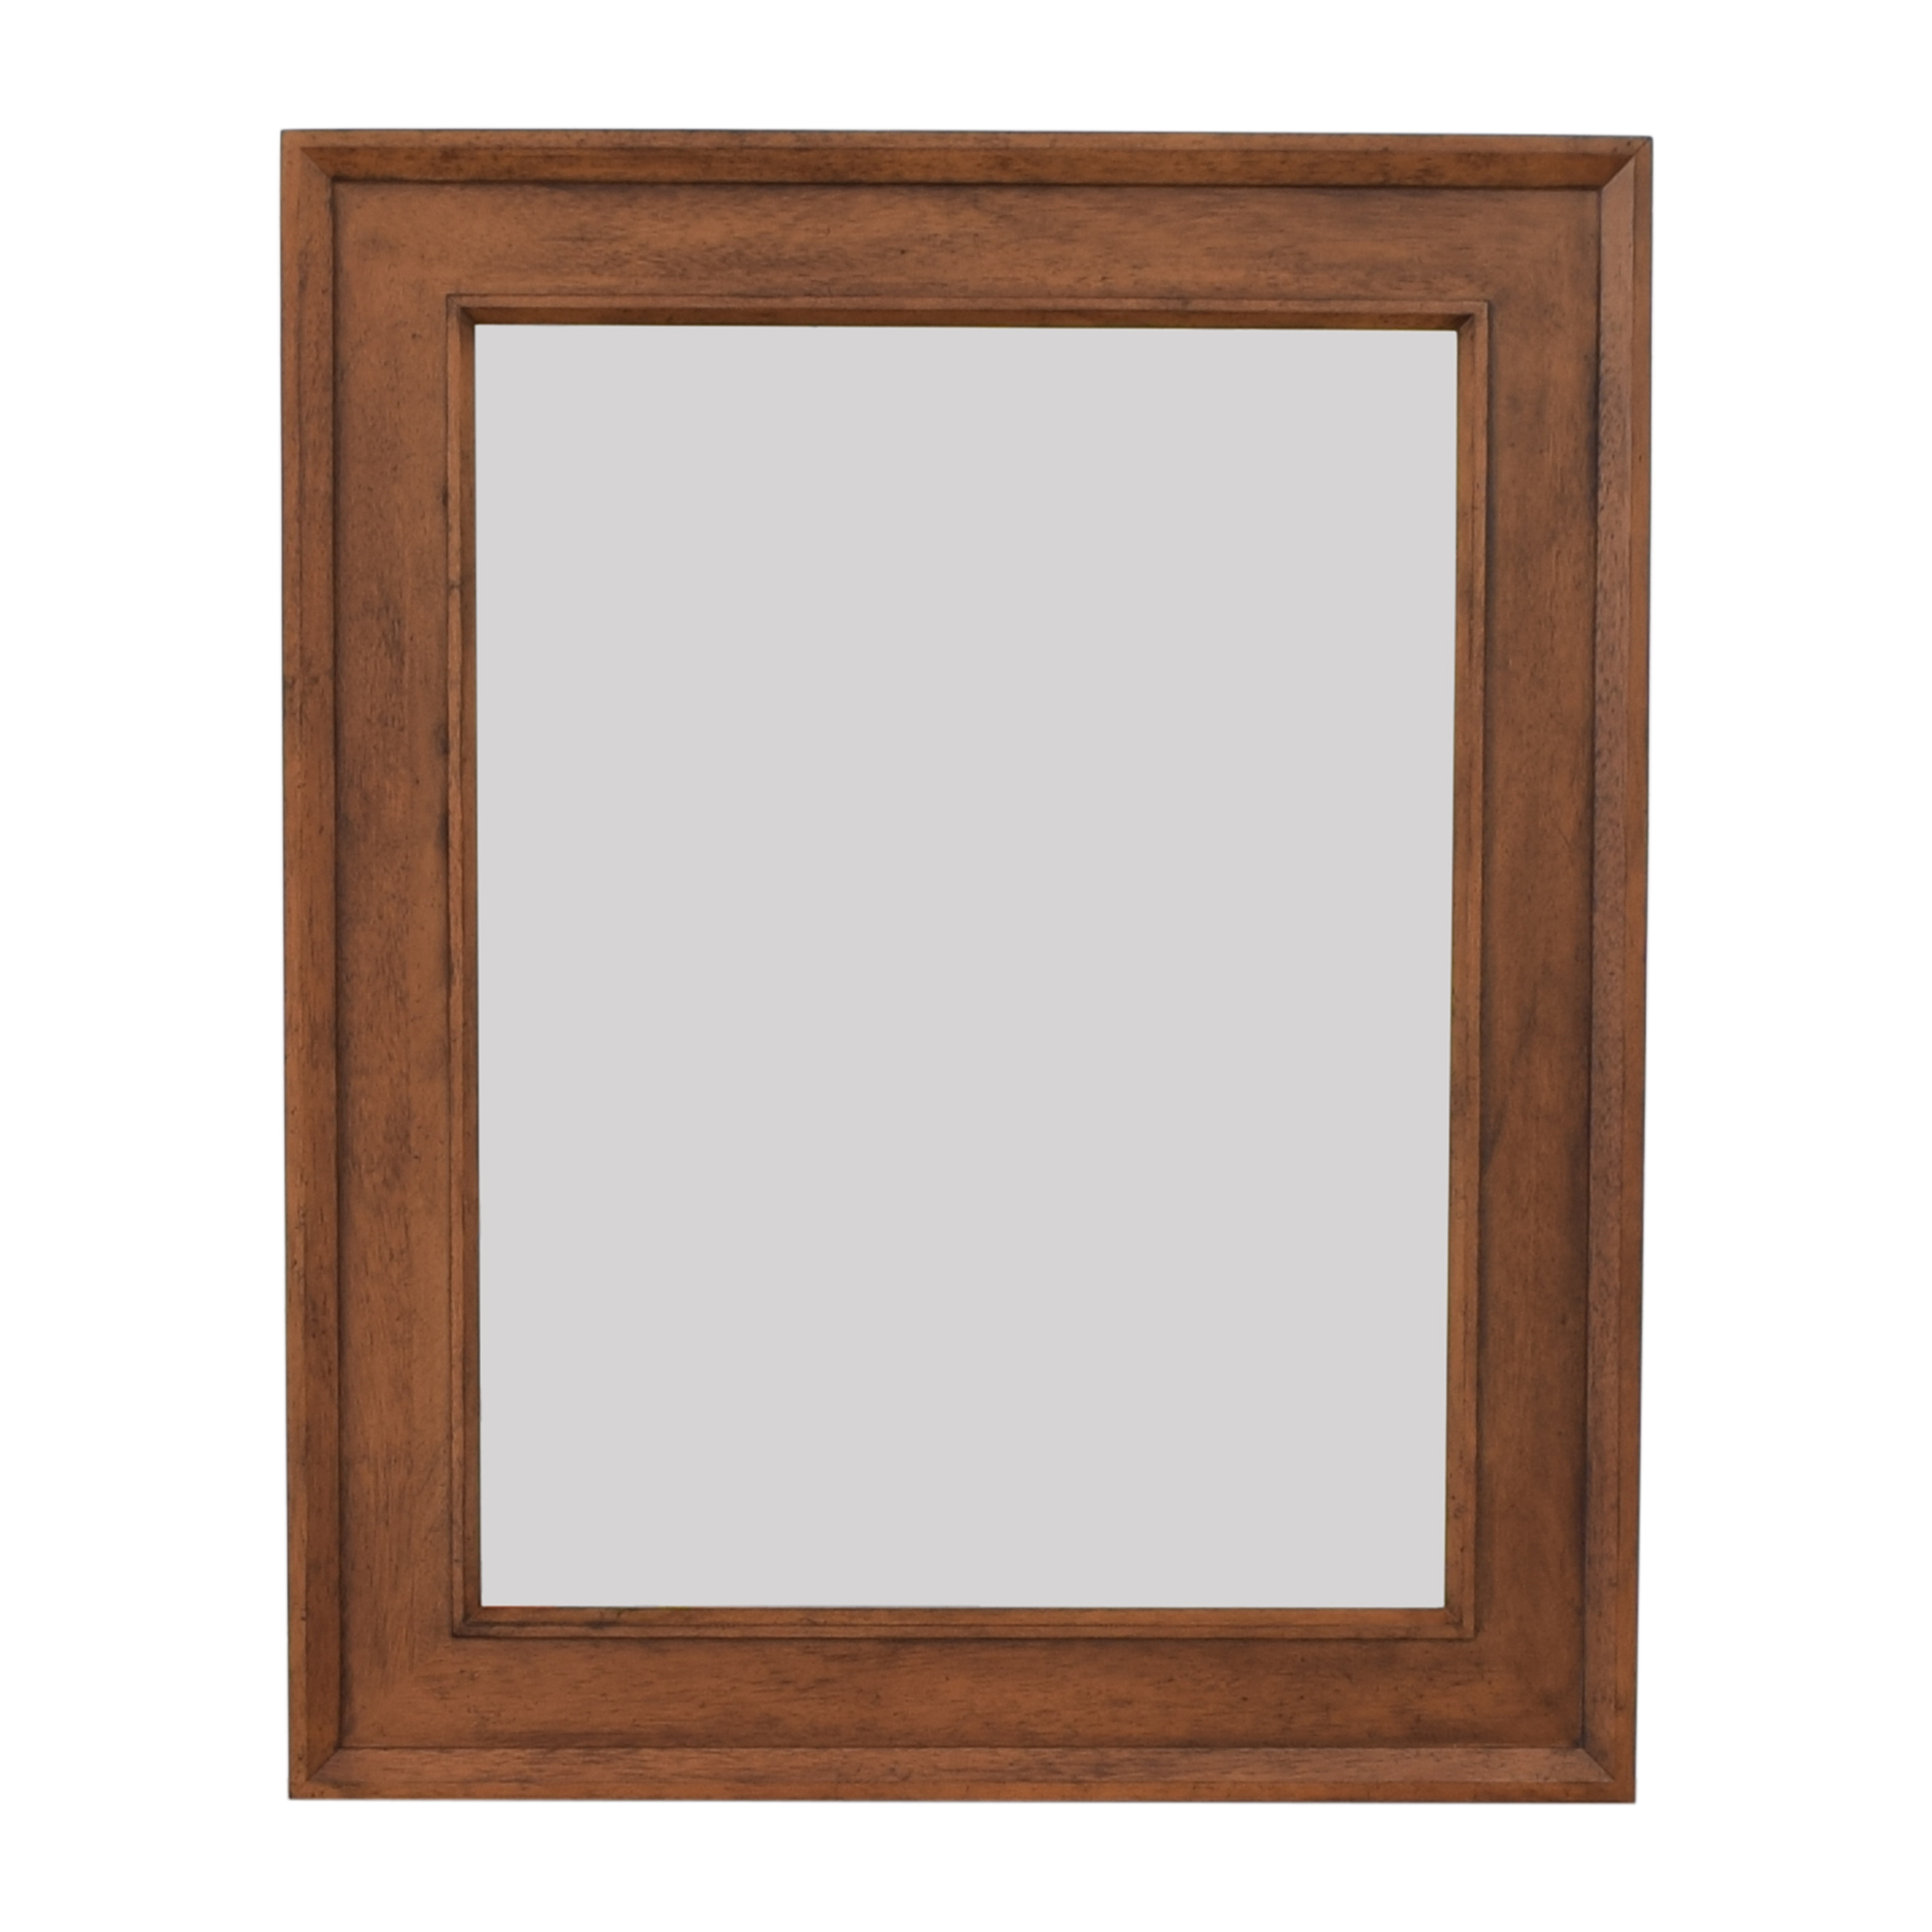 Ethan Allen Ethan Allen Bevan Mirror on sale